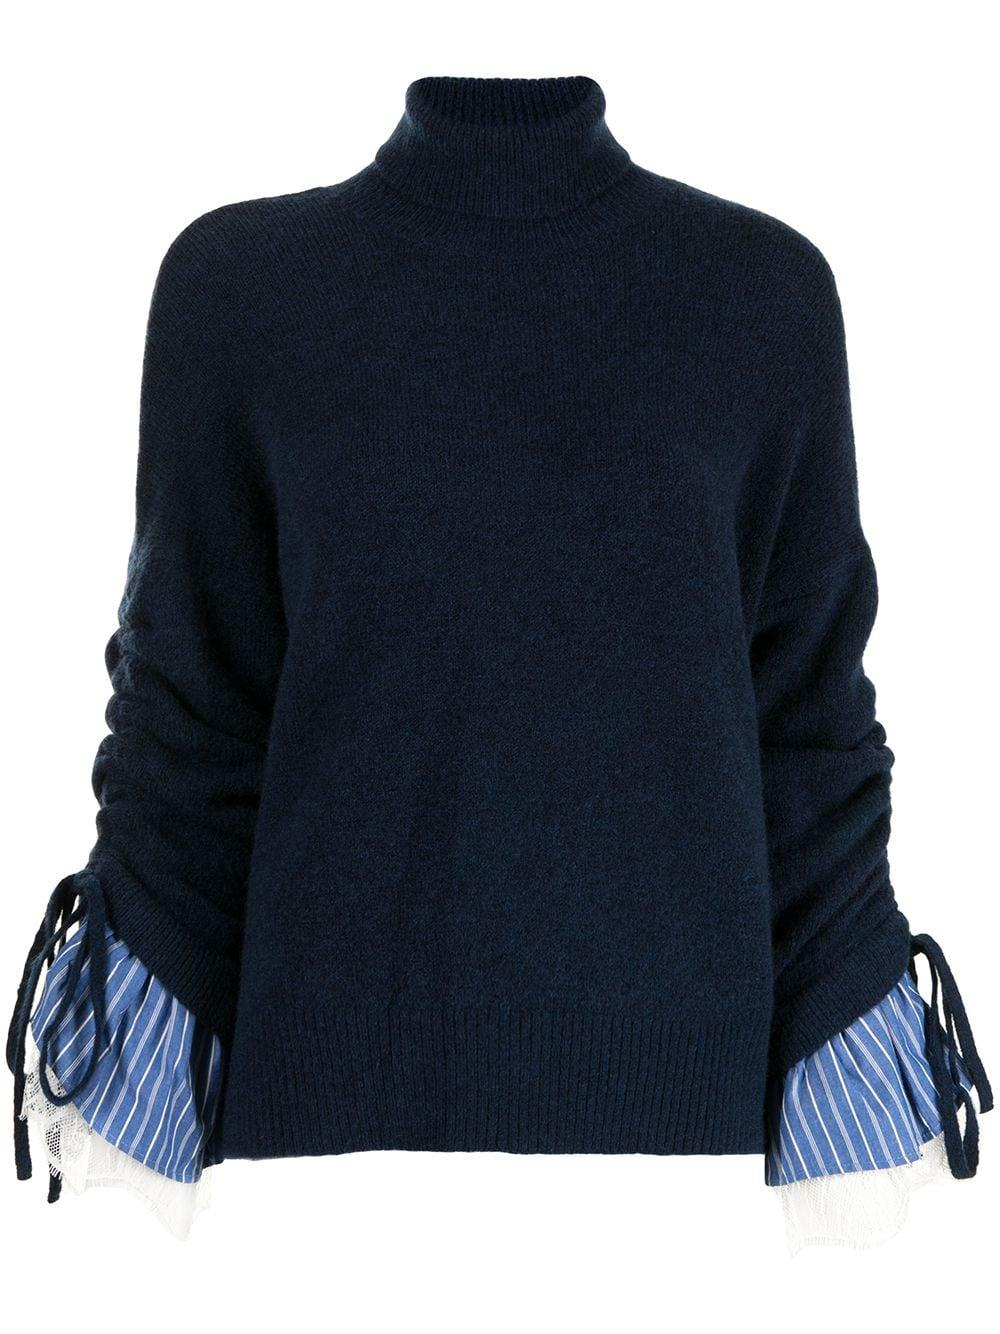 Atlas Turtleneck Sweater